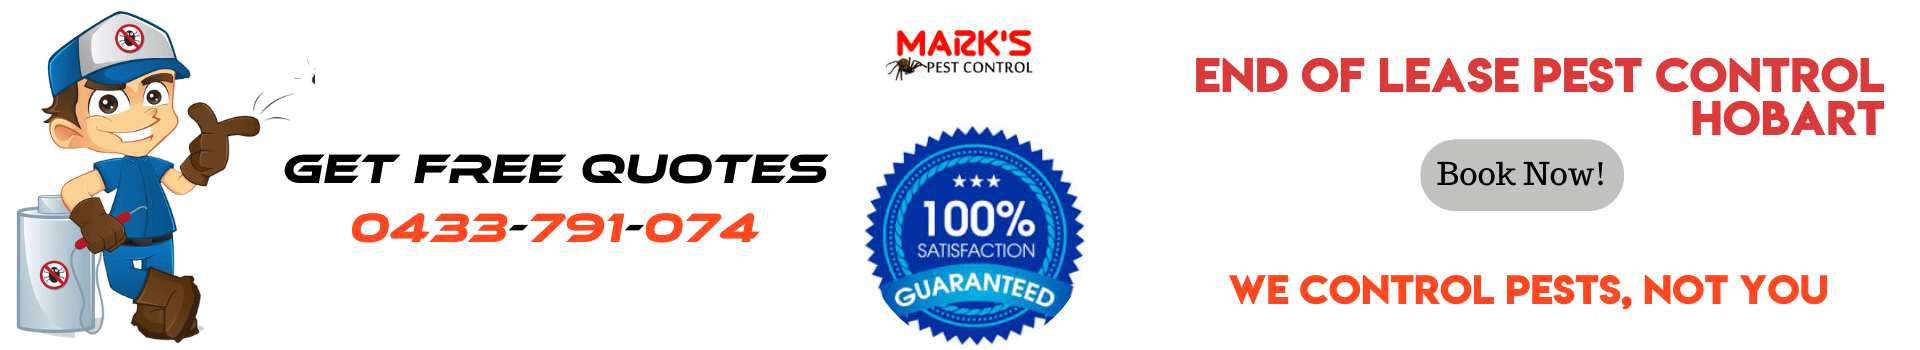 End Of Lease Pest Control Hobart